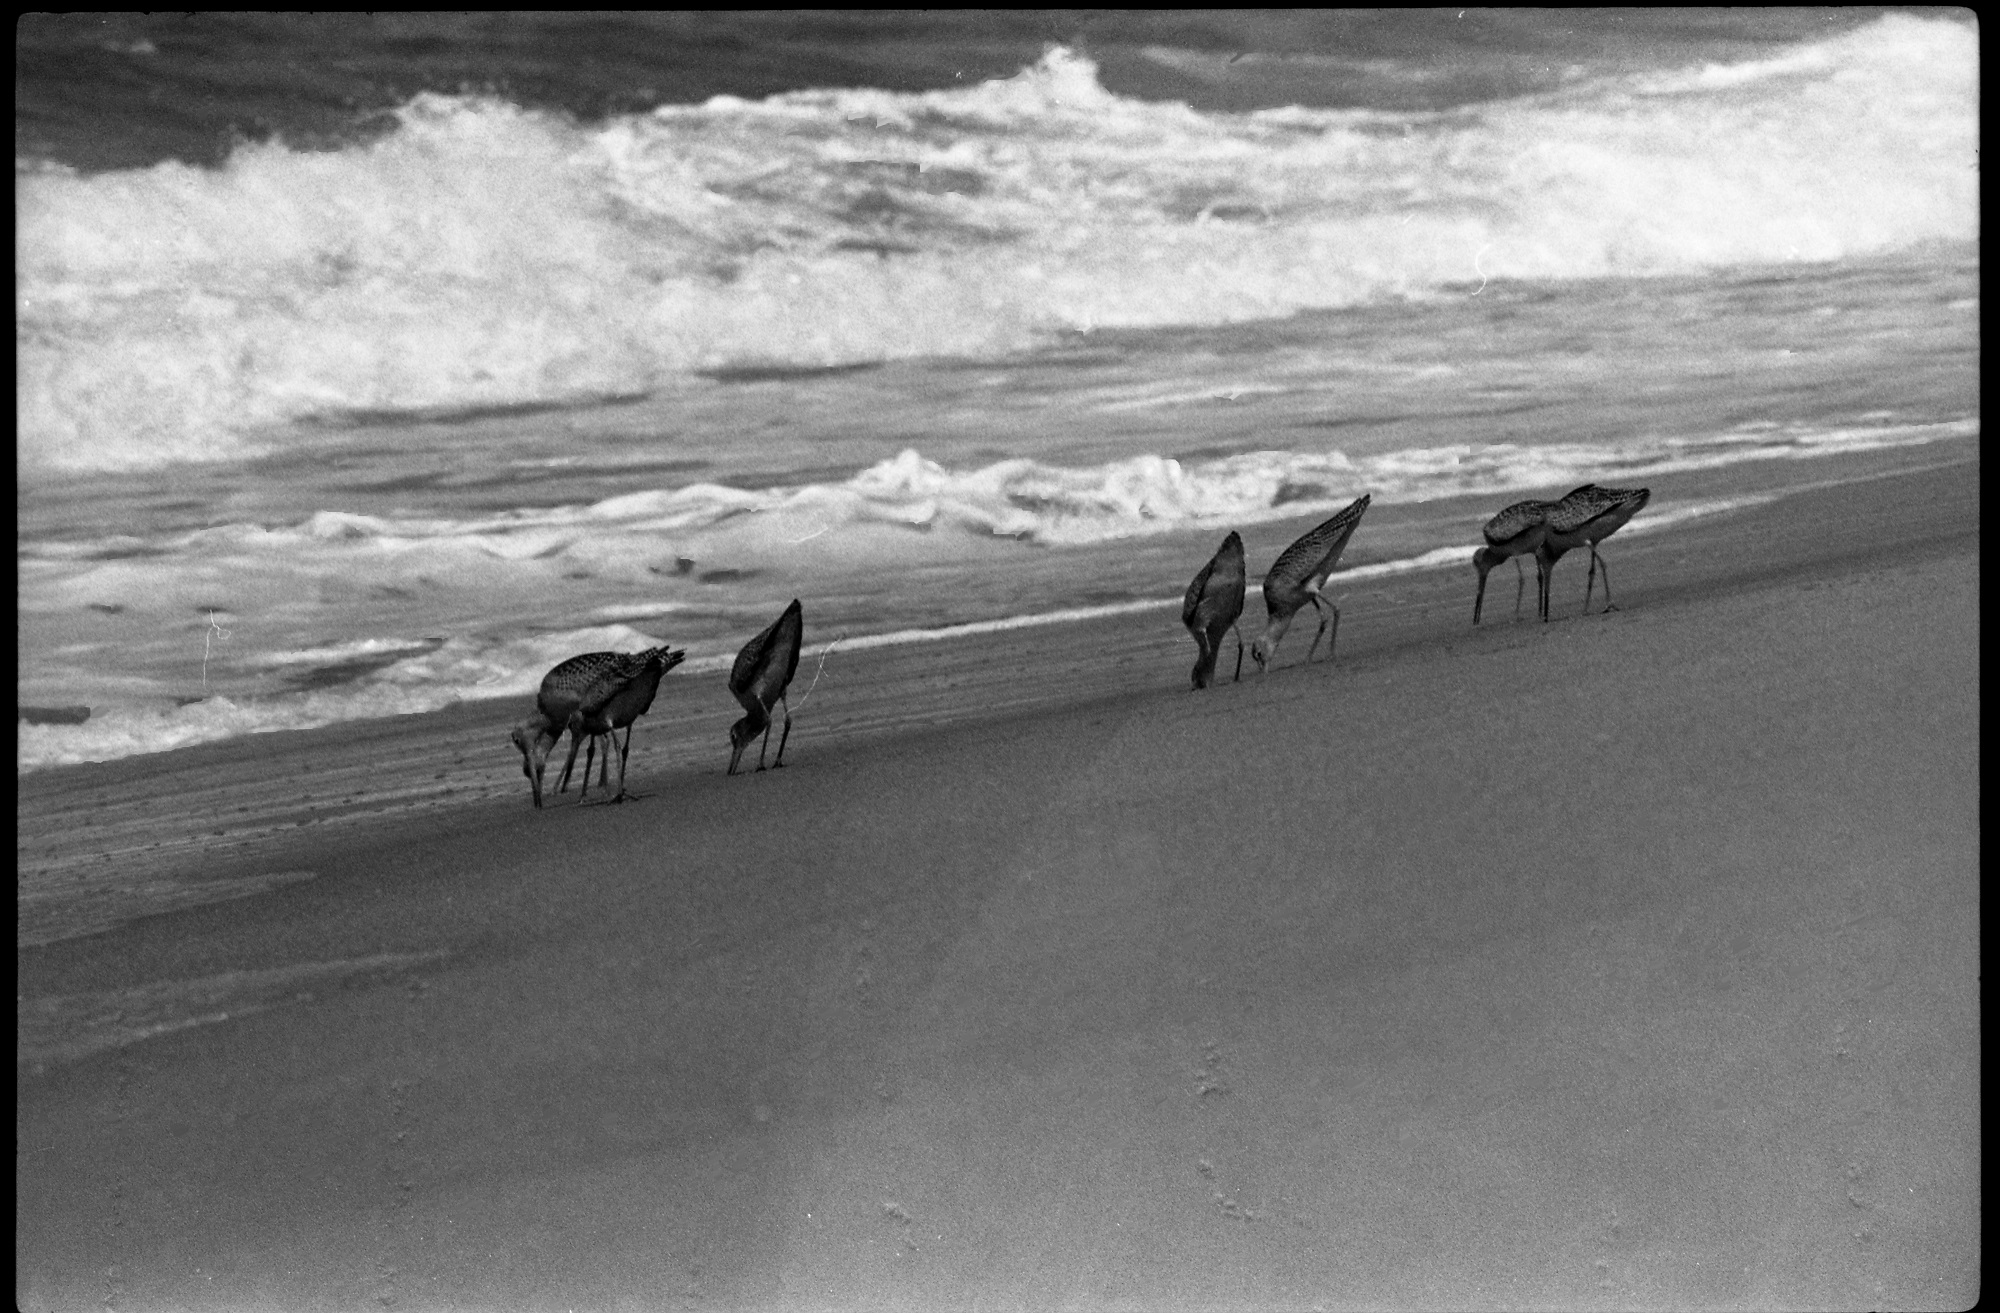 Baja beach birds, from Walt Girdner's Mexico collection.